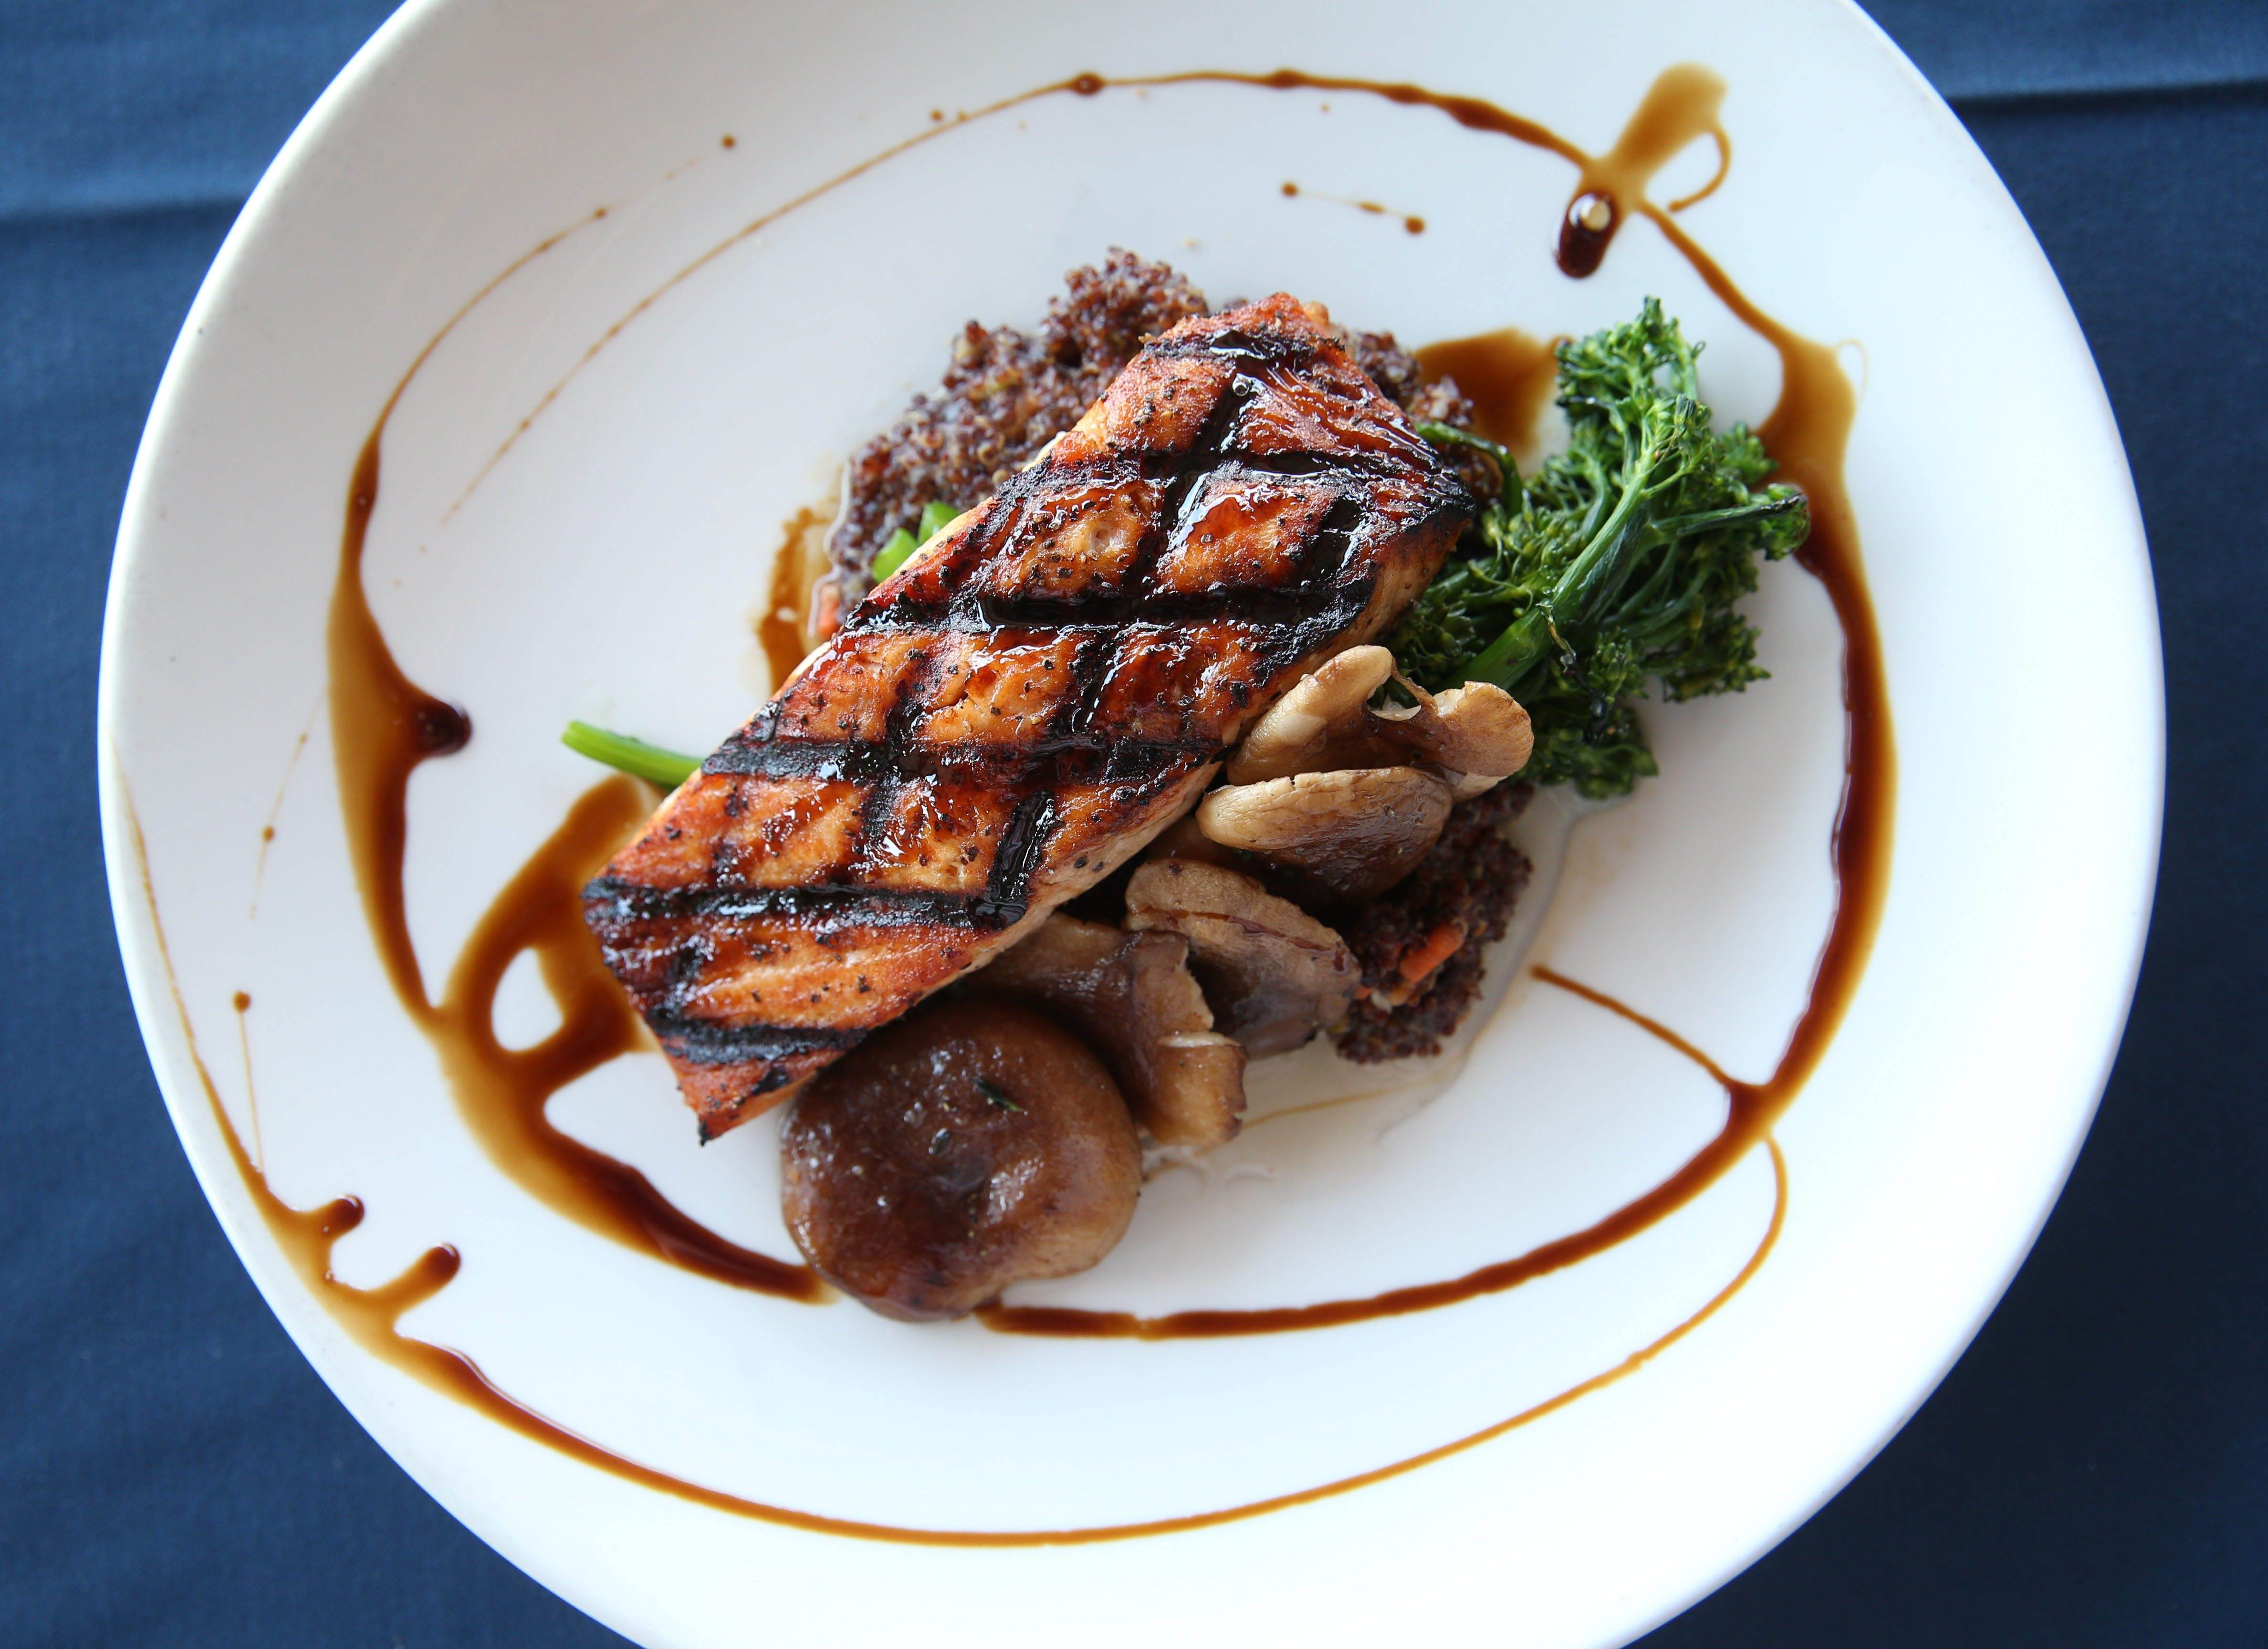 Fish is grilled and sweet glazed and comes with roasted mushrooms and red quinoa.